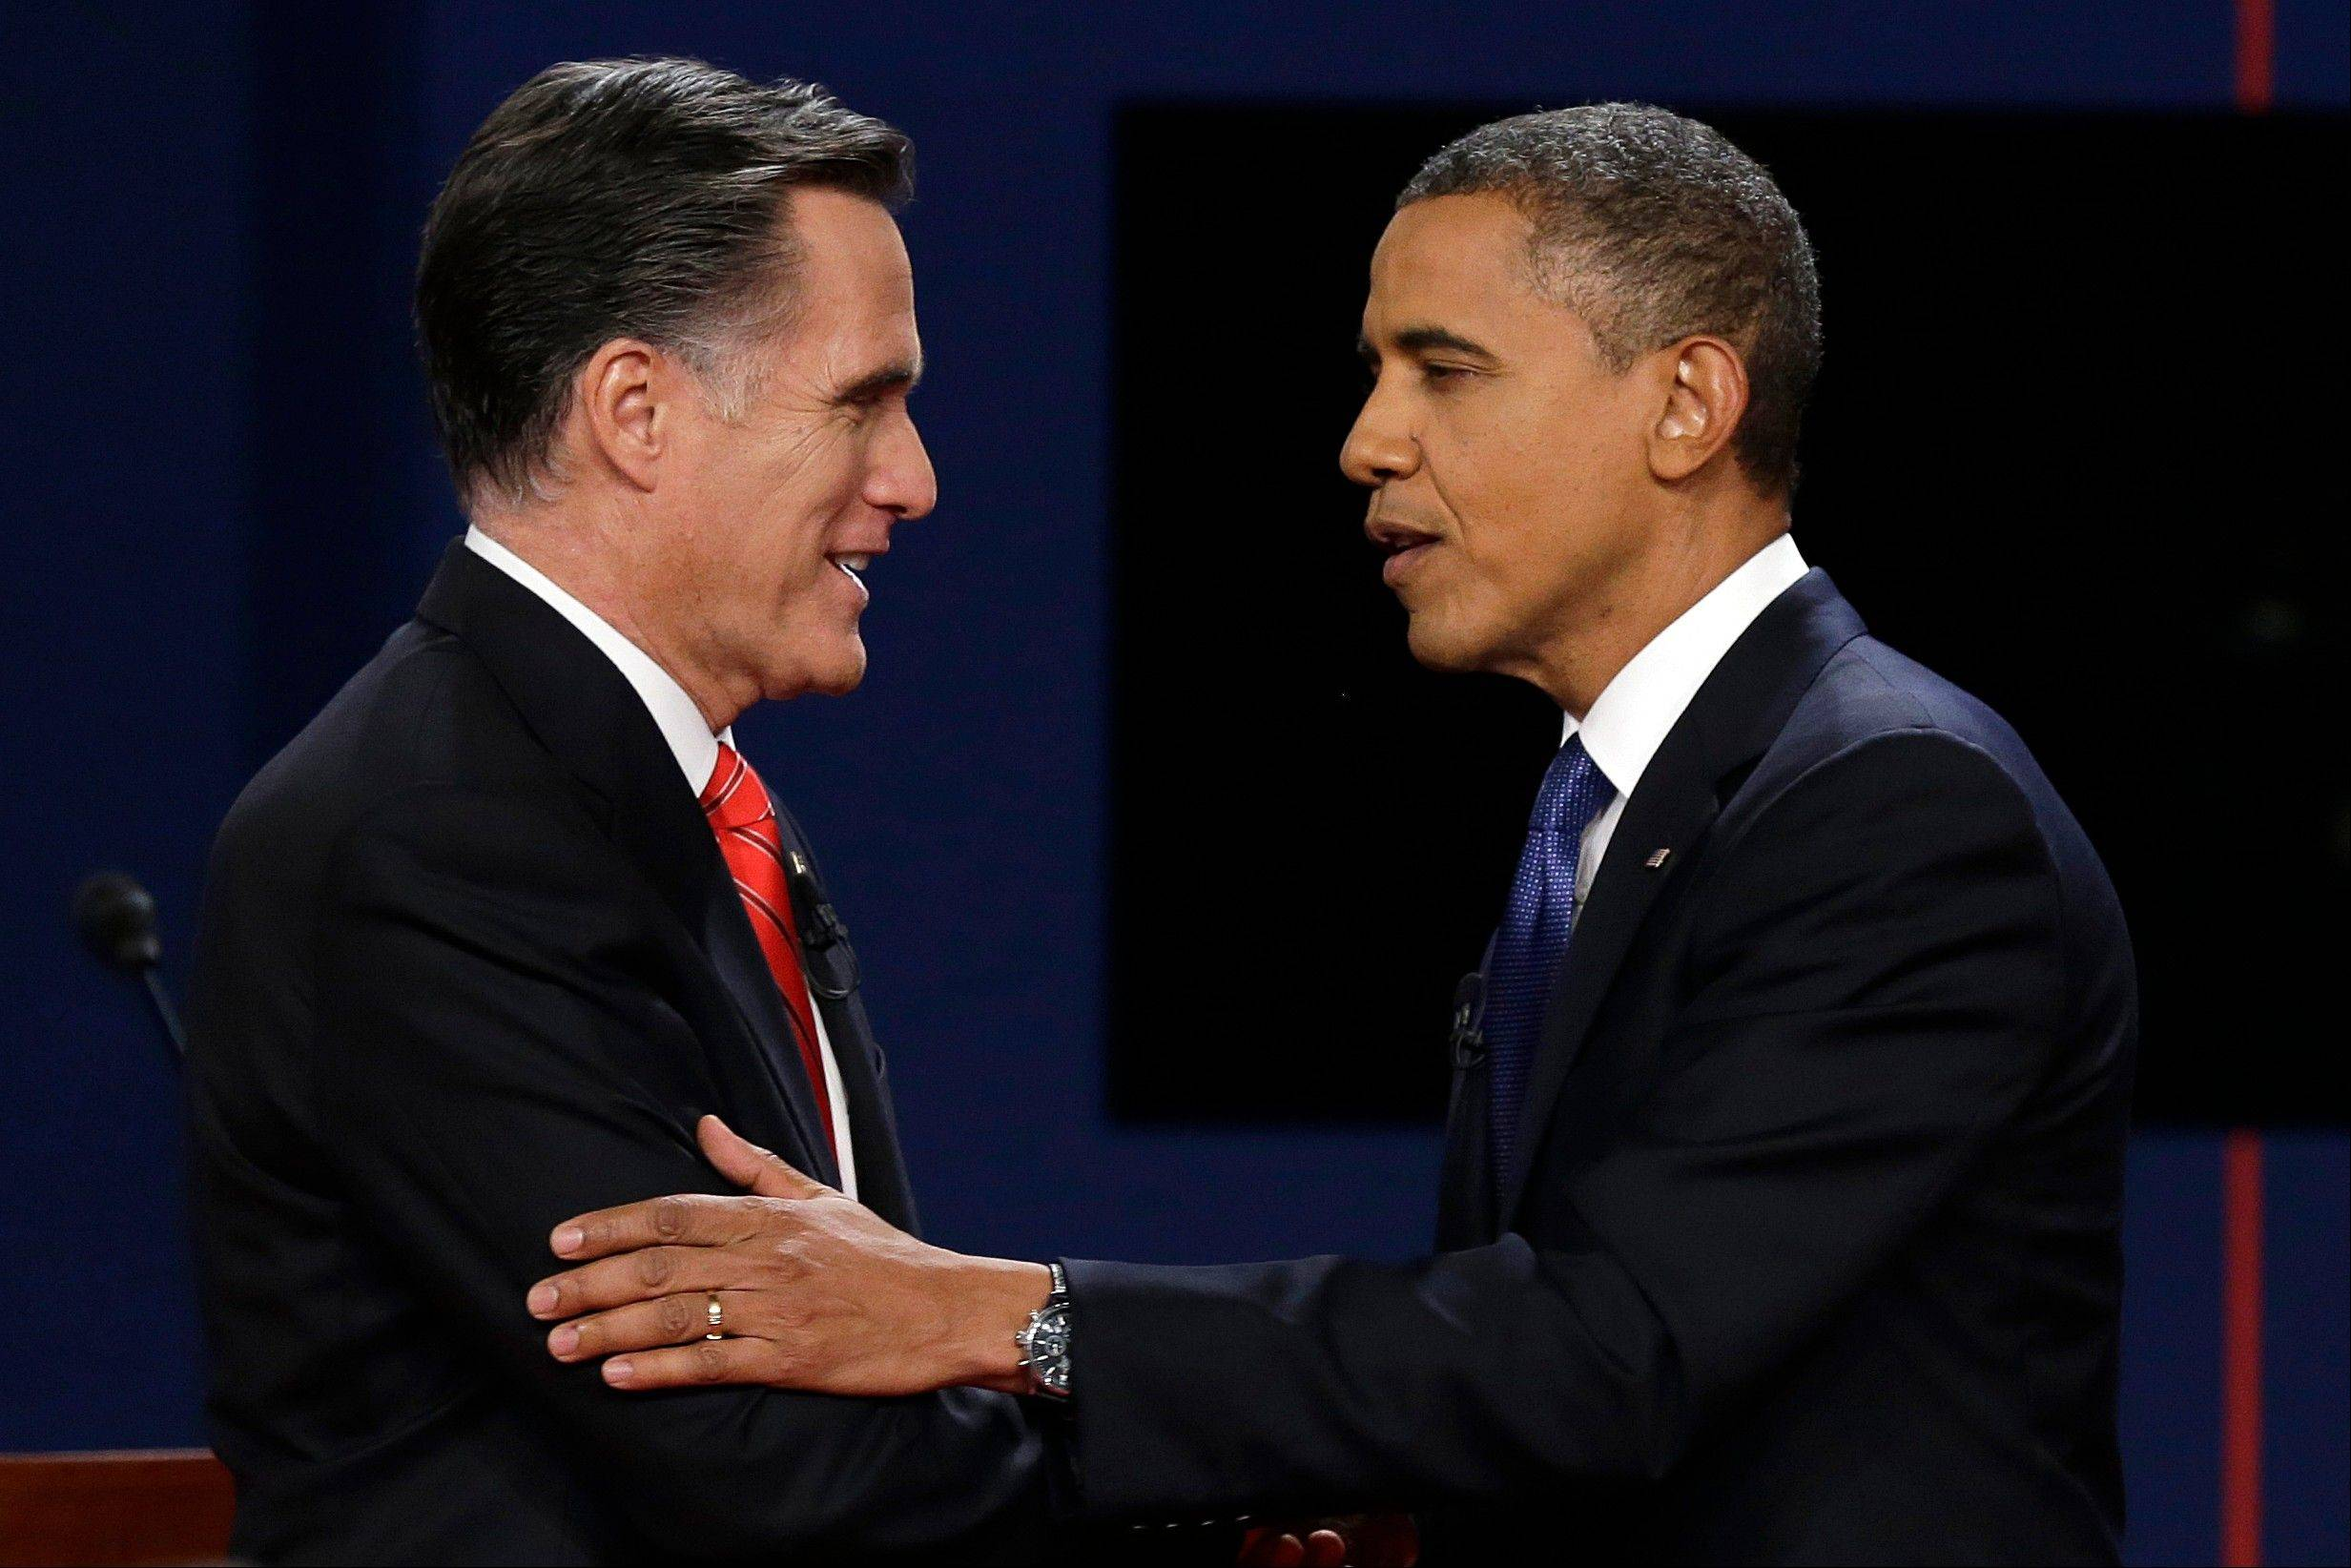 Republican presidential nominee Mitt Romney and President Barack Obama shake hands Wednesday after the first presidential debate at the University of Denver, in Denver. Both men relished the wonky talk, but Mitt Romney also showed the easy confidence a presidential contender needs -- and a bit of the salesman's dynamic presentation.